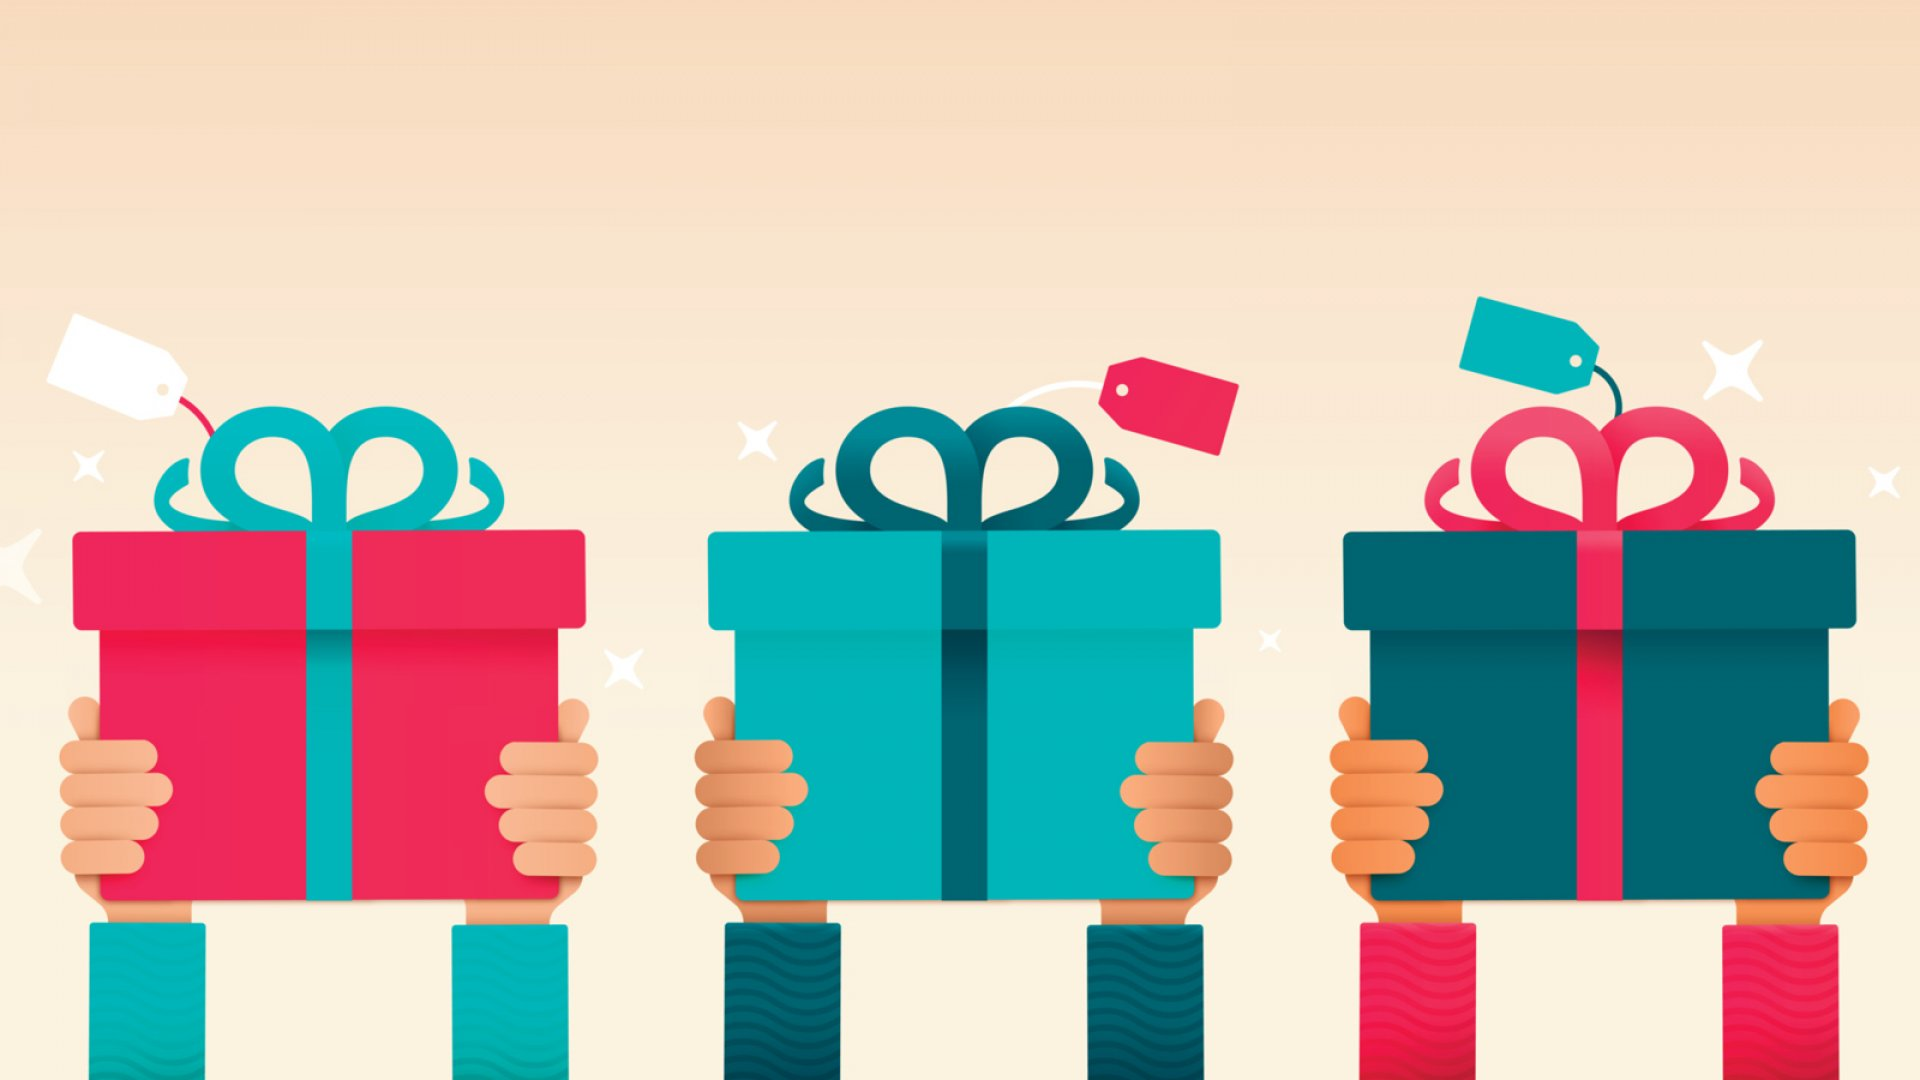 This Year, Recruiting Holiday Workers Could Be Tougher Than Ever. Use These 2 Strategies to Get Ahead